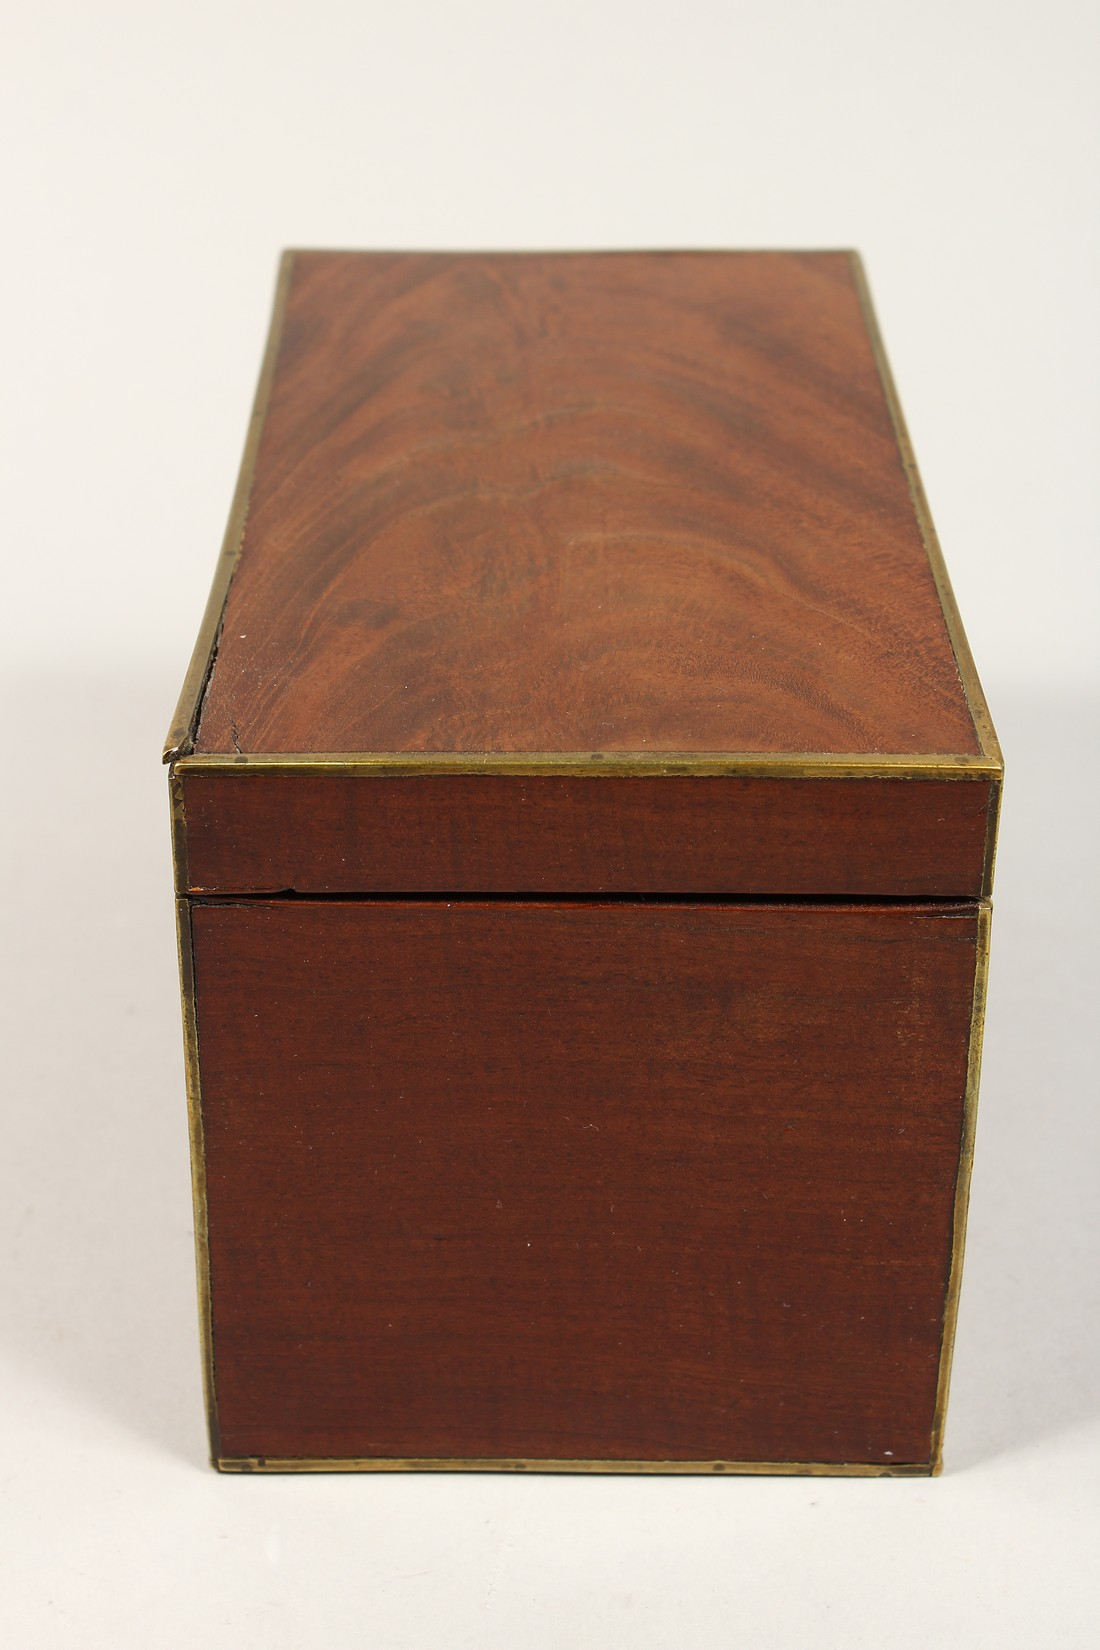 A REGENCY MAHOGANY TWO DIVISION TEA CADDY with brass stringing. 8ins long - Image 4 of 7